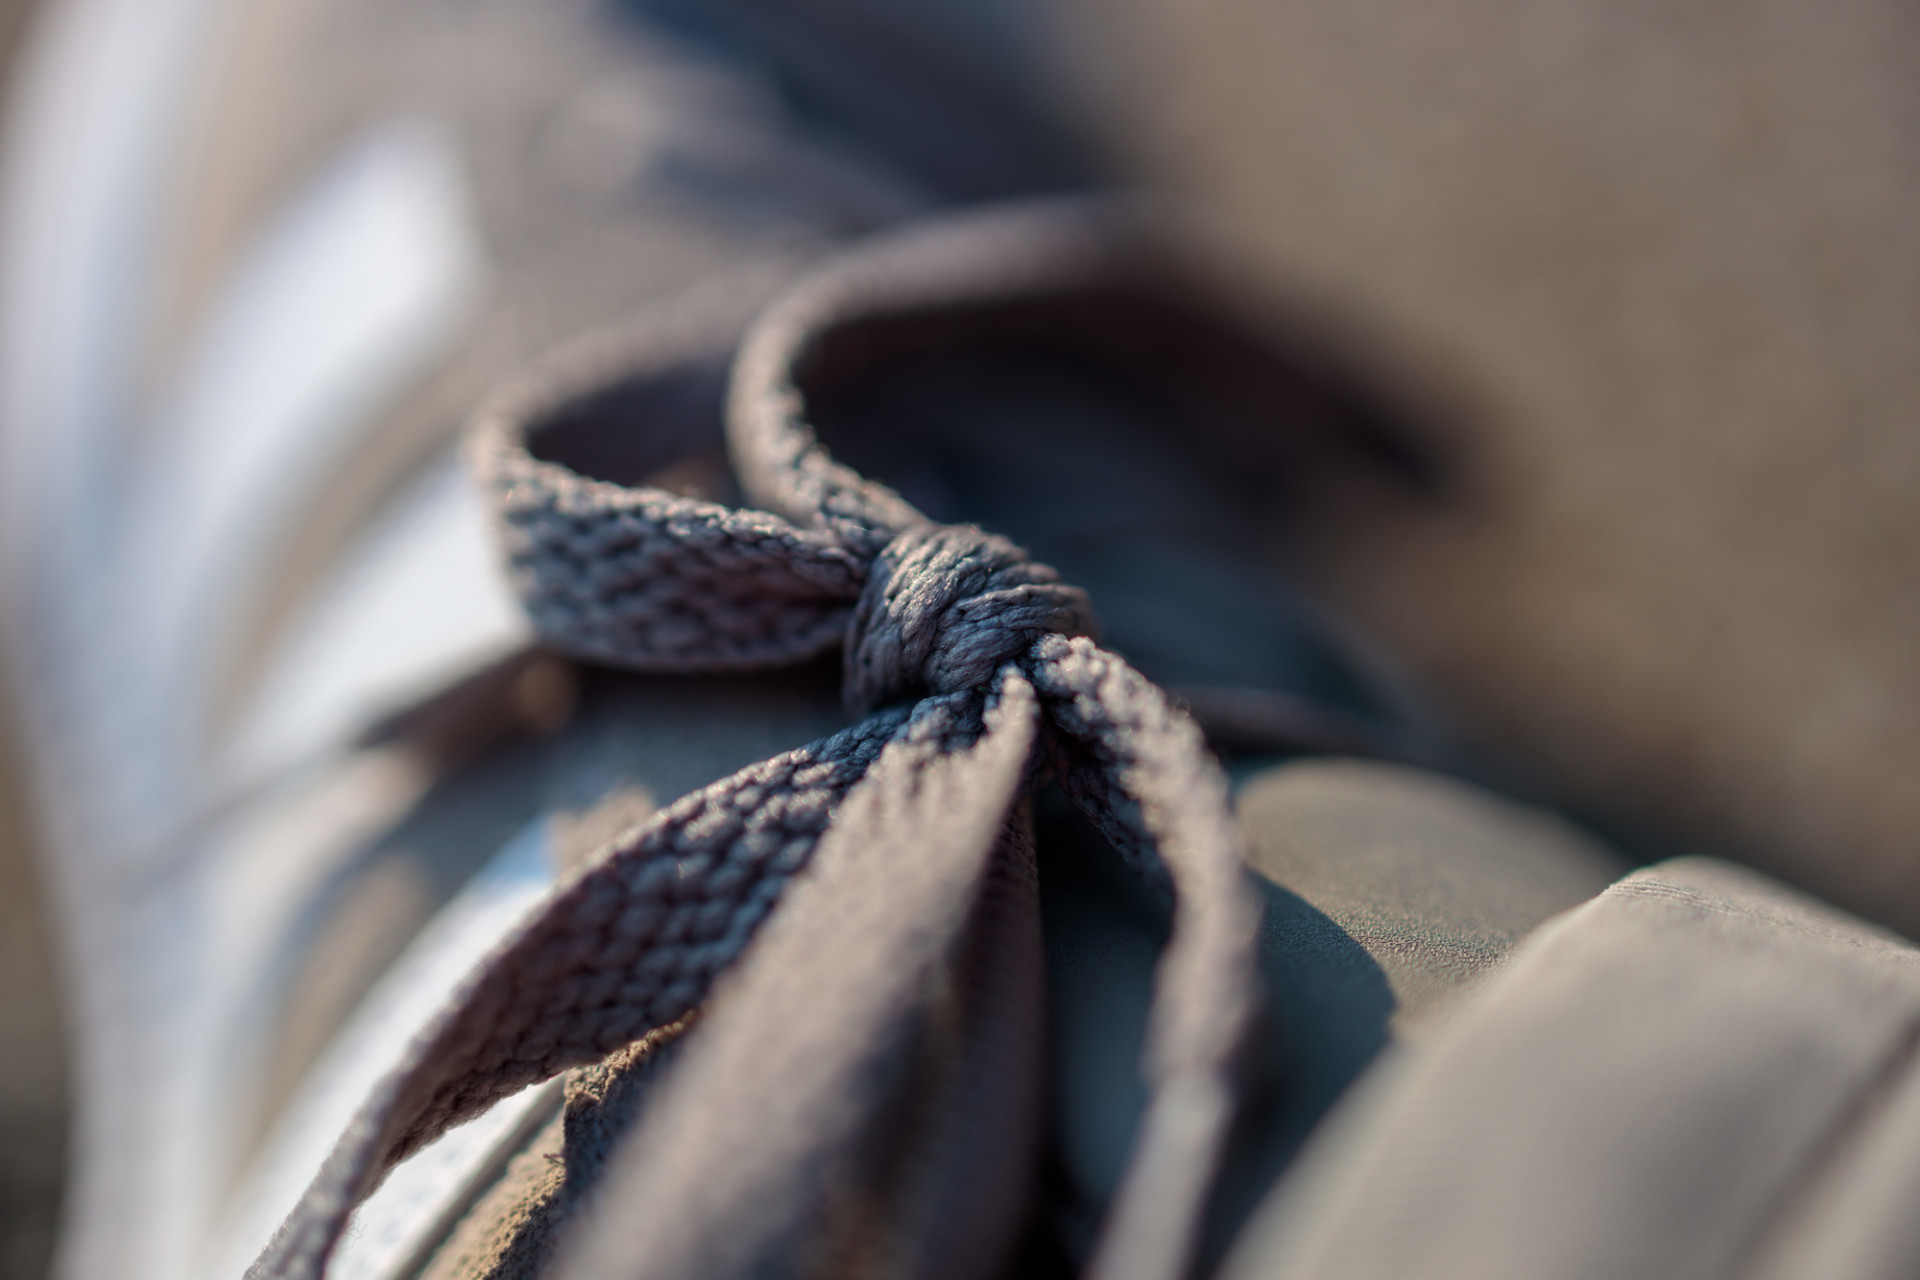 Shoelaces tied to the loop on the shoe